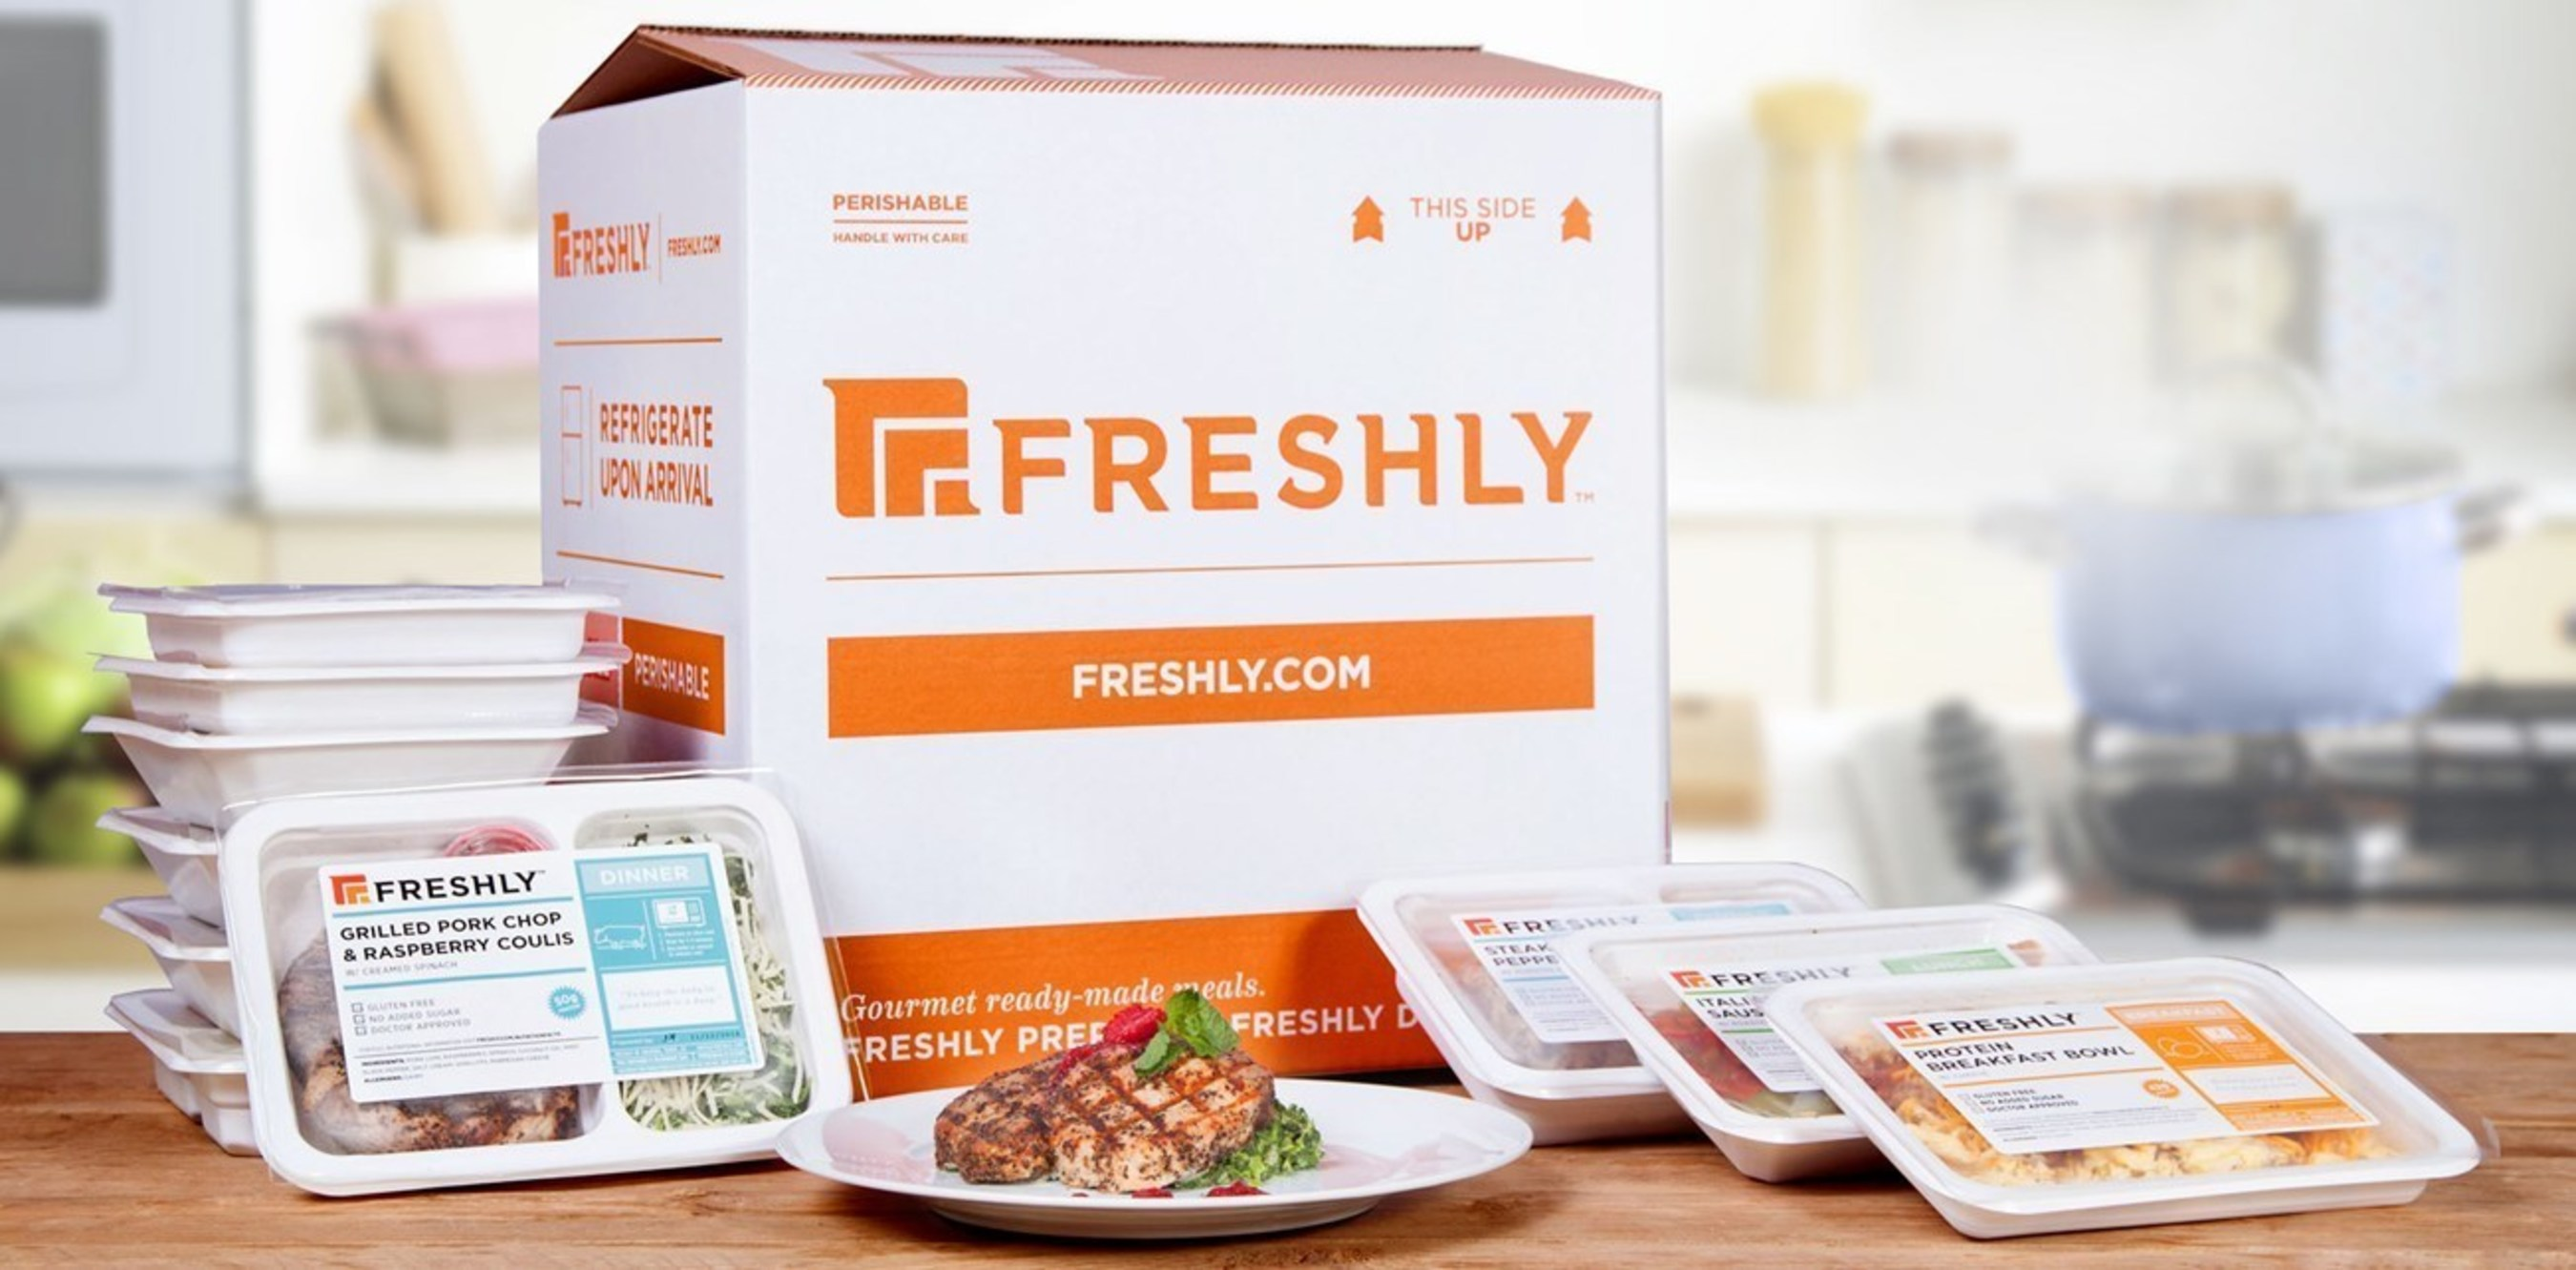 Leading gourmet meal delivery company FRESHLY has announced the close of a Series A financing round of $7 million